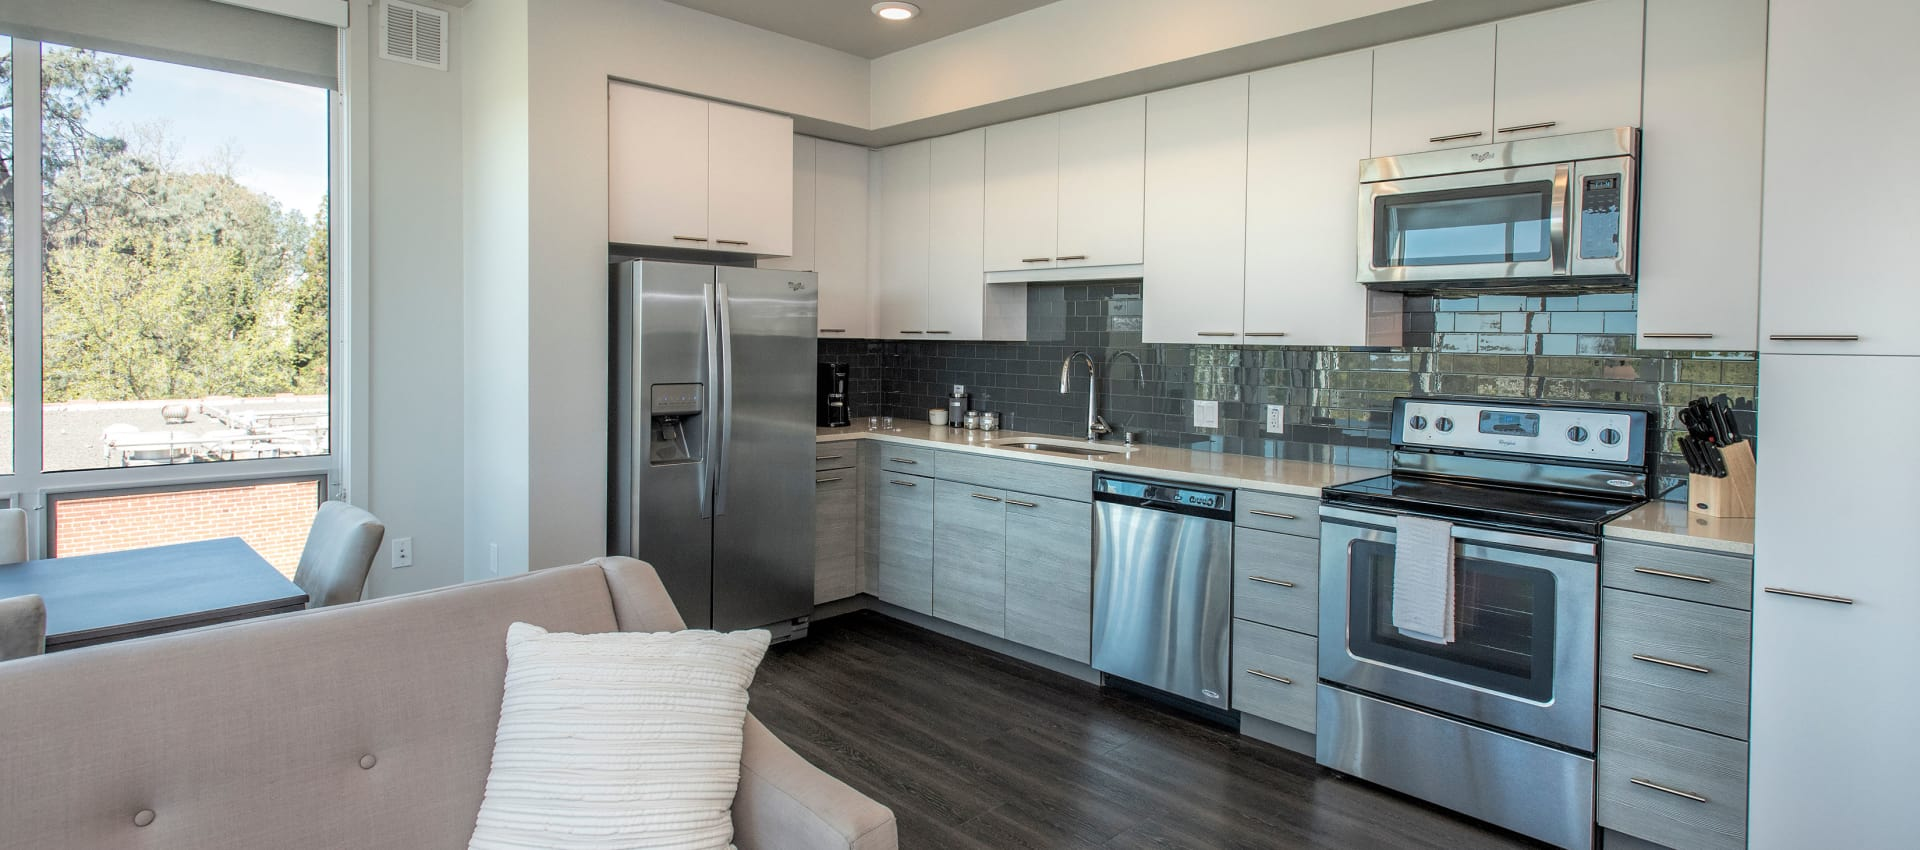 State-of-the-art kitchen with white cabinetry at EVIVA Midtown in Sacramento, California